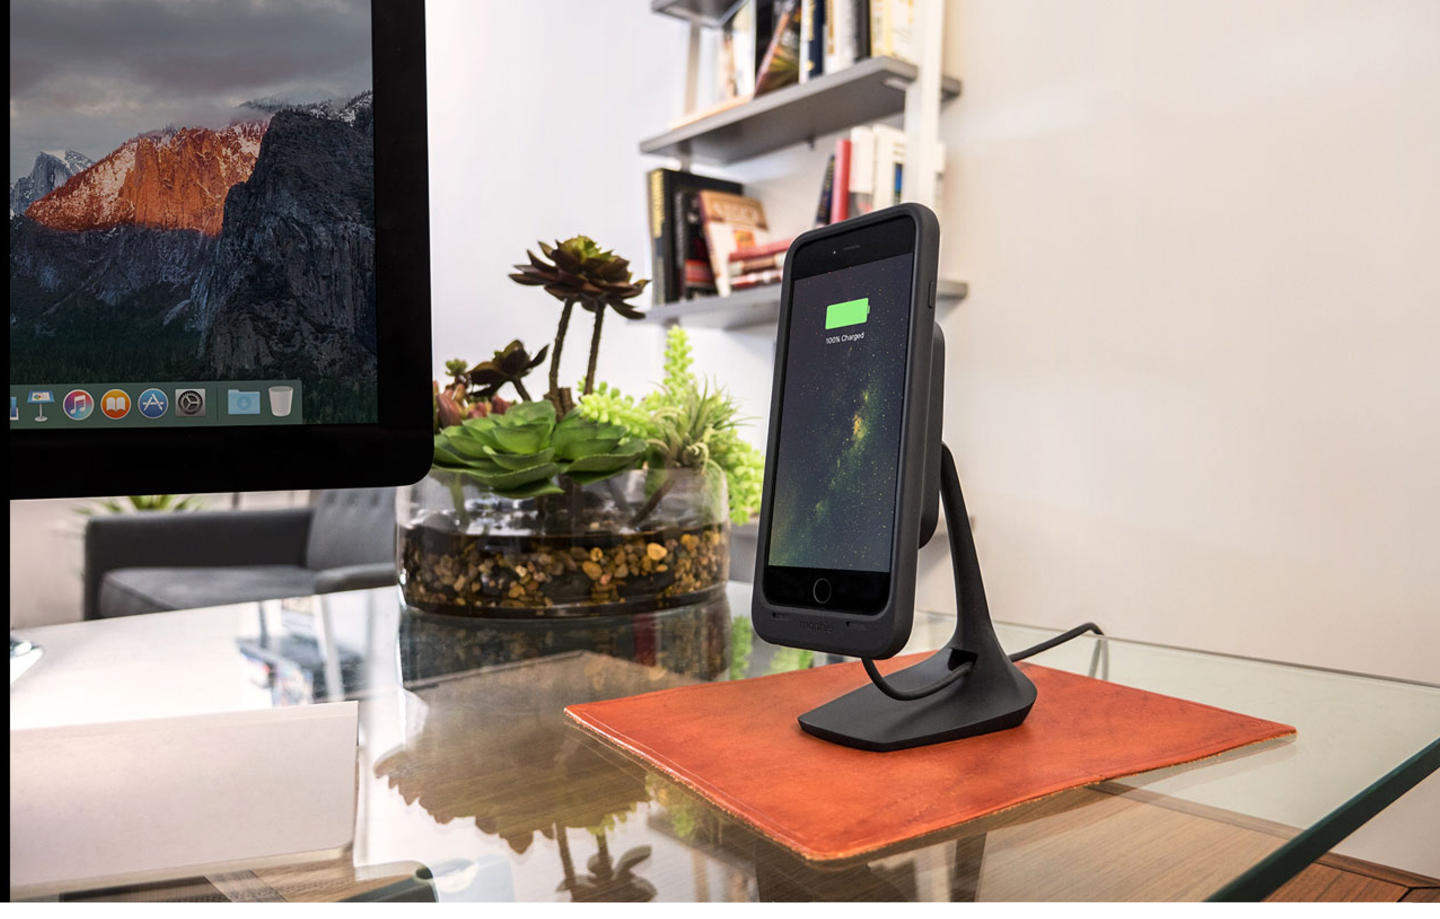 mophie-charge-force-wireless-charging-desk-mount-qi-enabled-devices-black-3454_WRLS-DESK-BLK-malaysia-unit-1